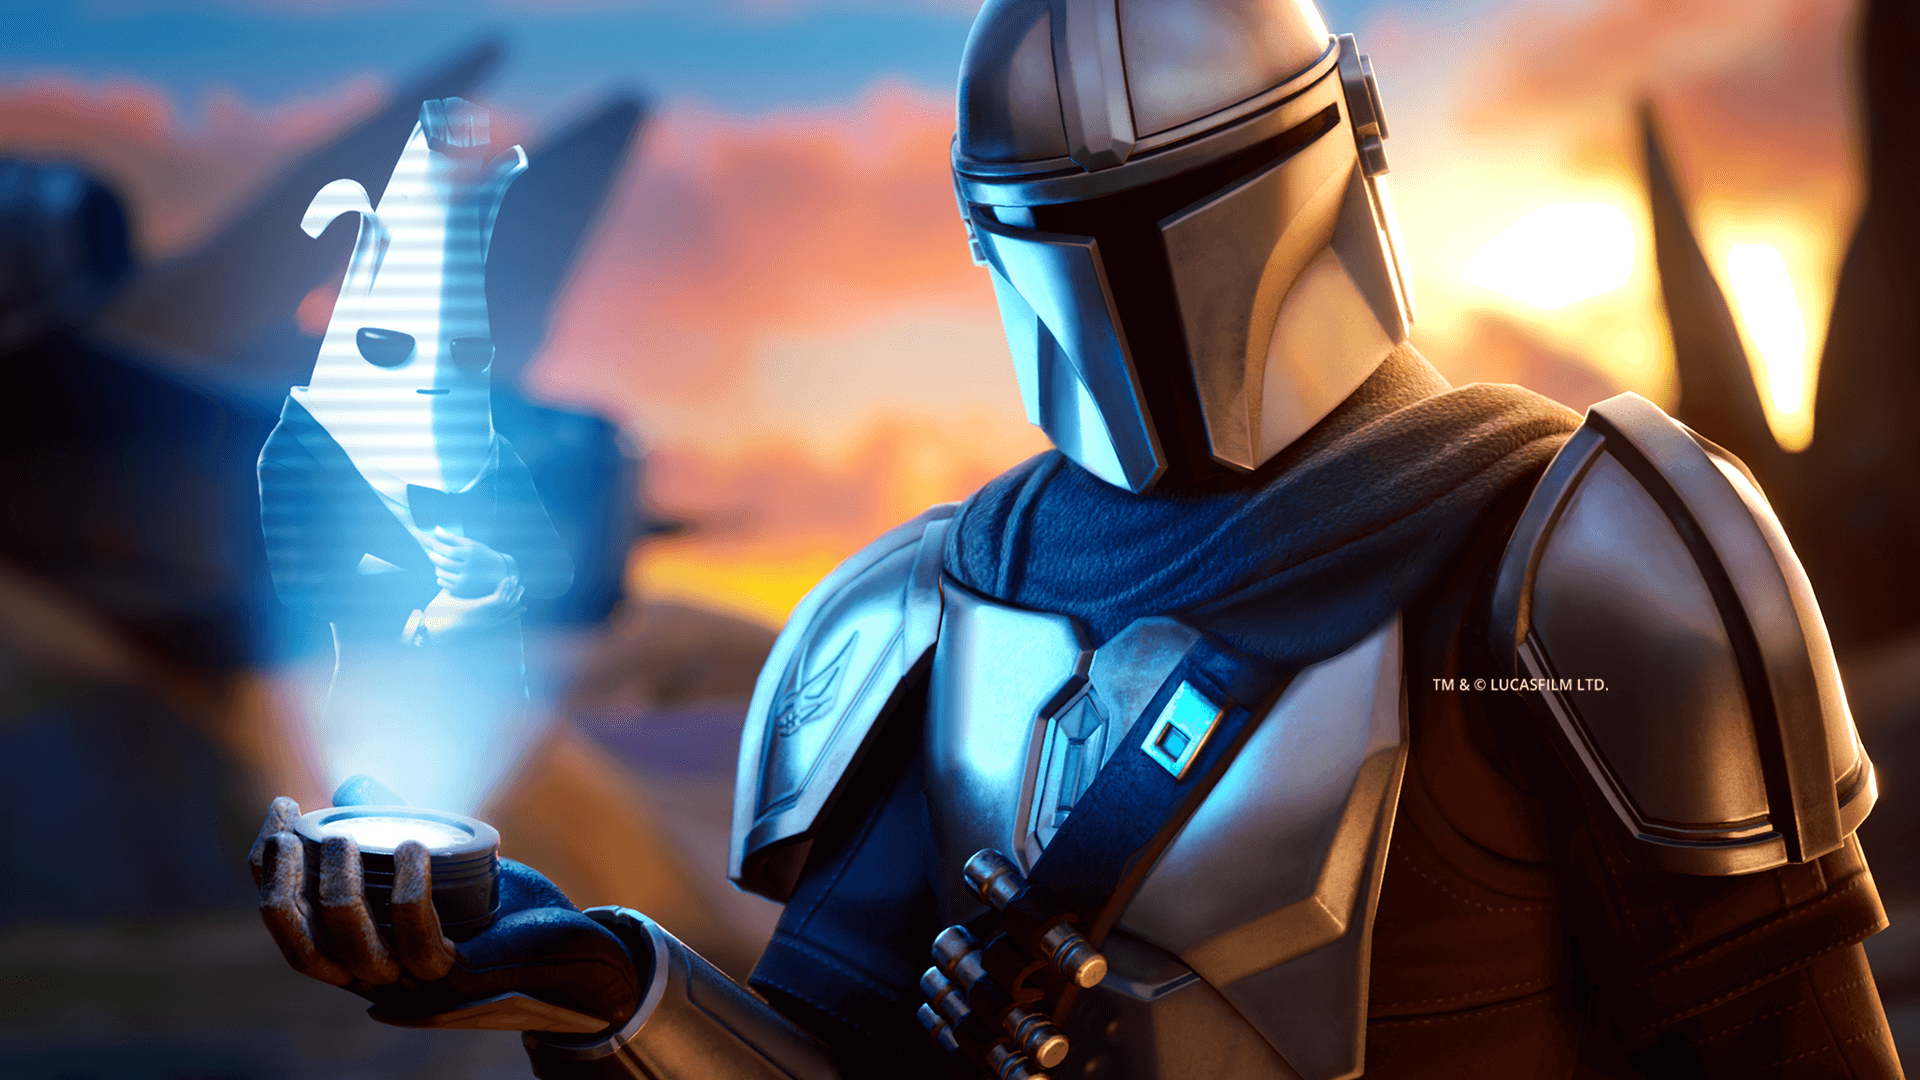 Din Djarin inspects his Fortnite target for the Mando's Bounty event